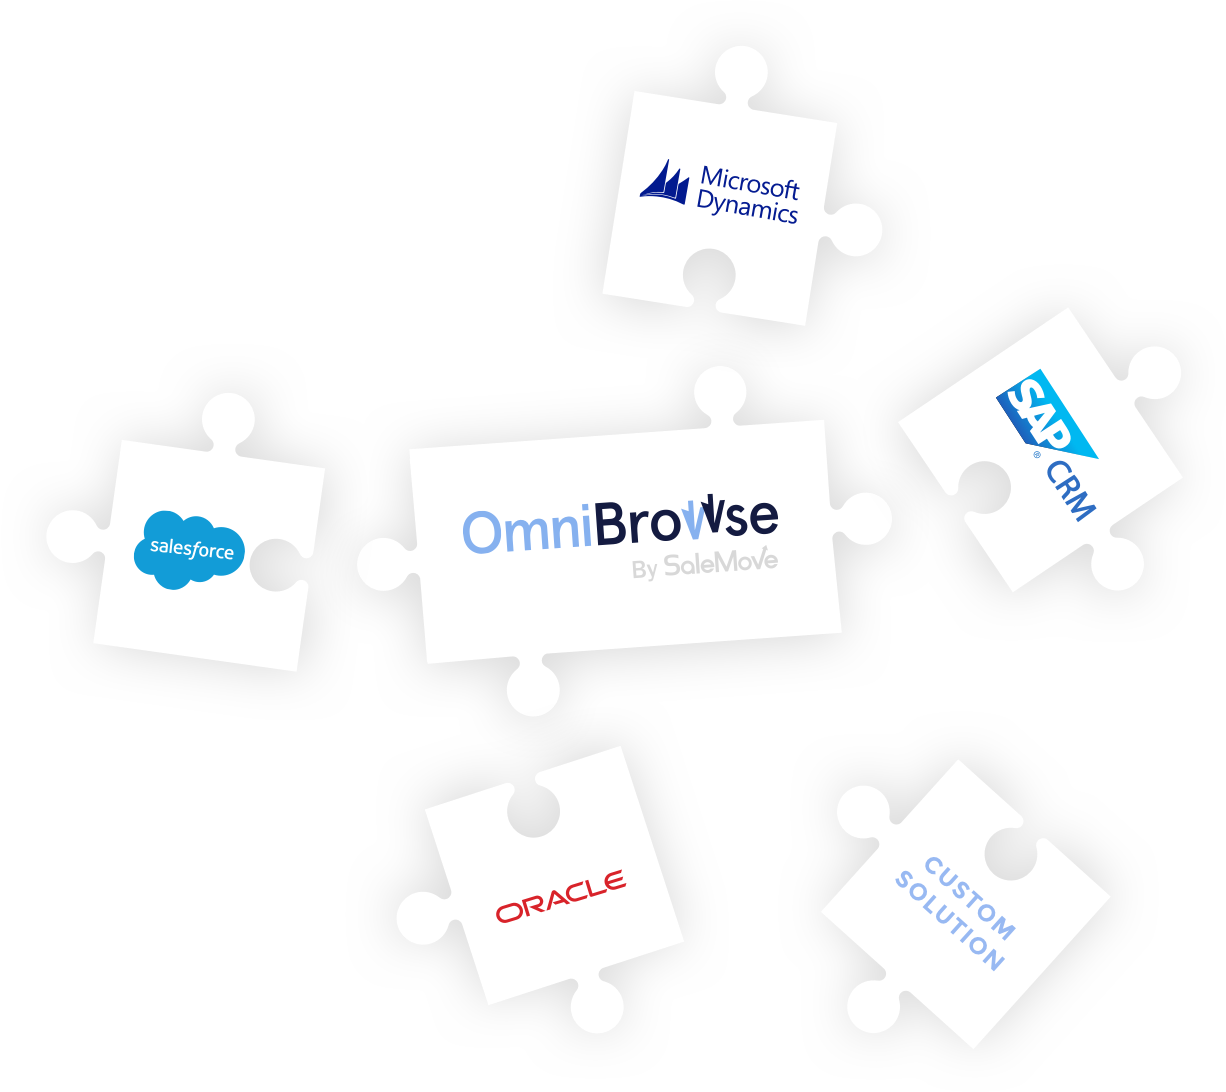 OmniBrowse integrates seamlessly with 3rd-party CRM solutions